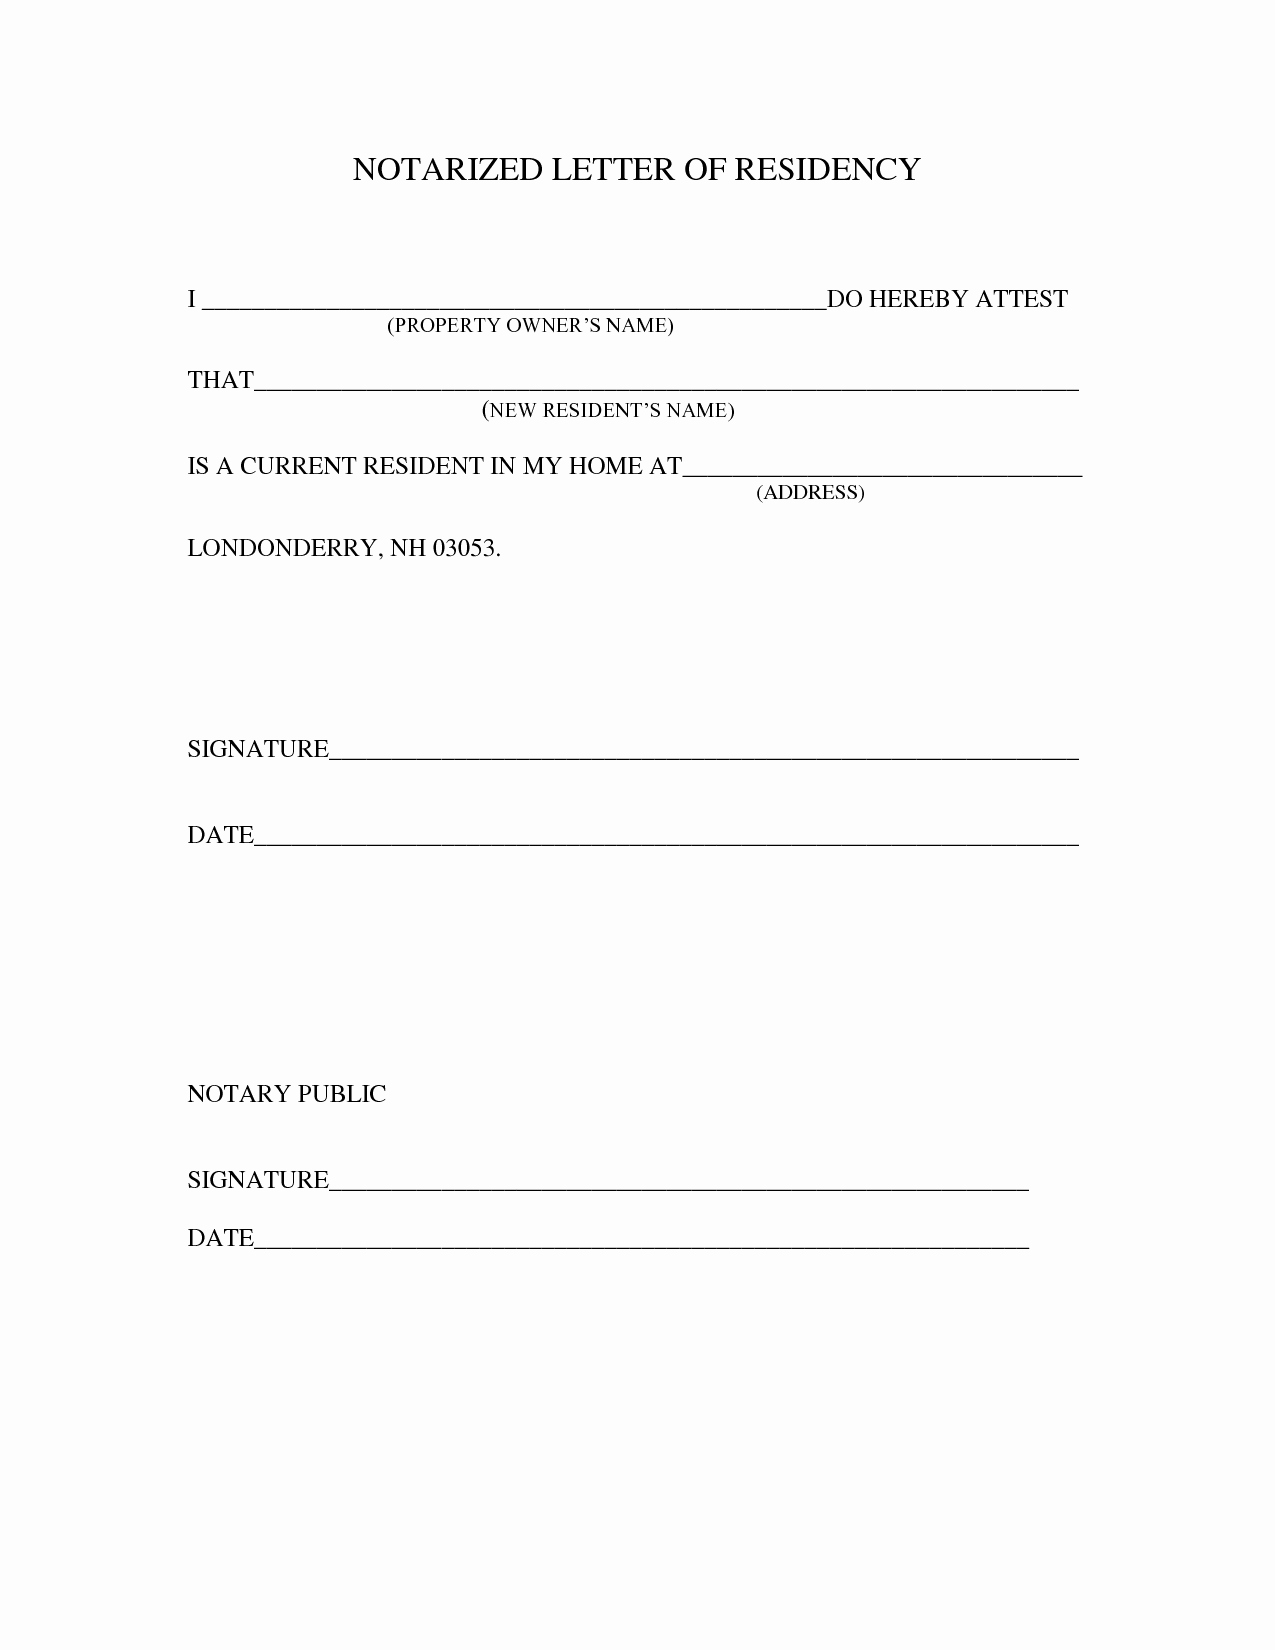 Notarized Letter format Pdf Beautiful Sample Notarized Letter Template